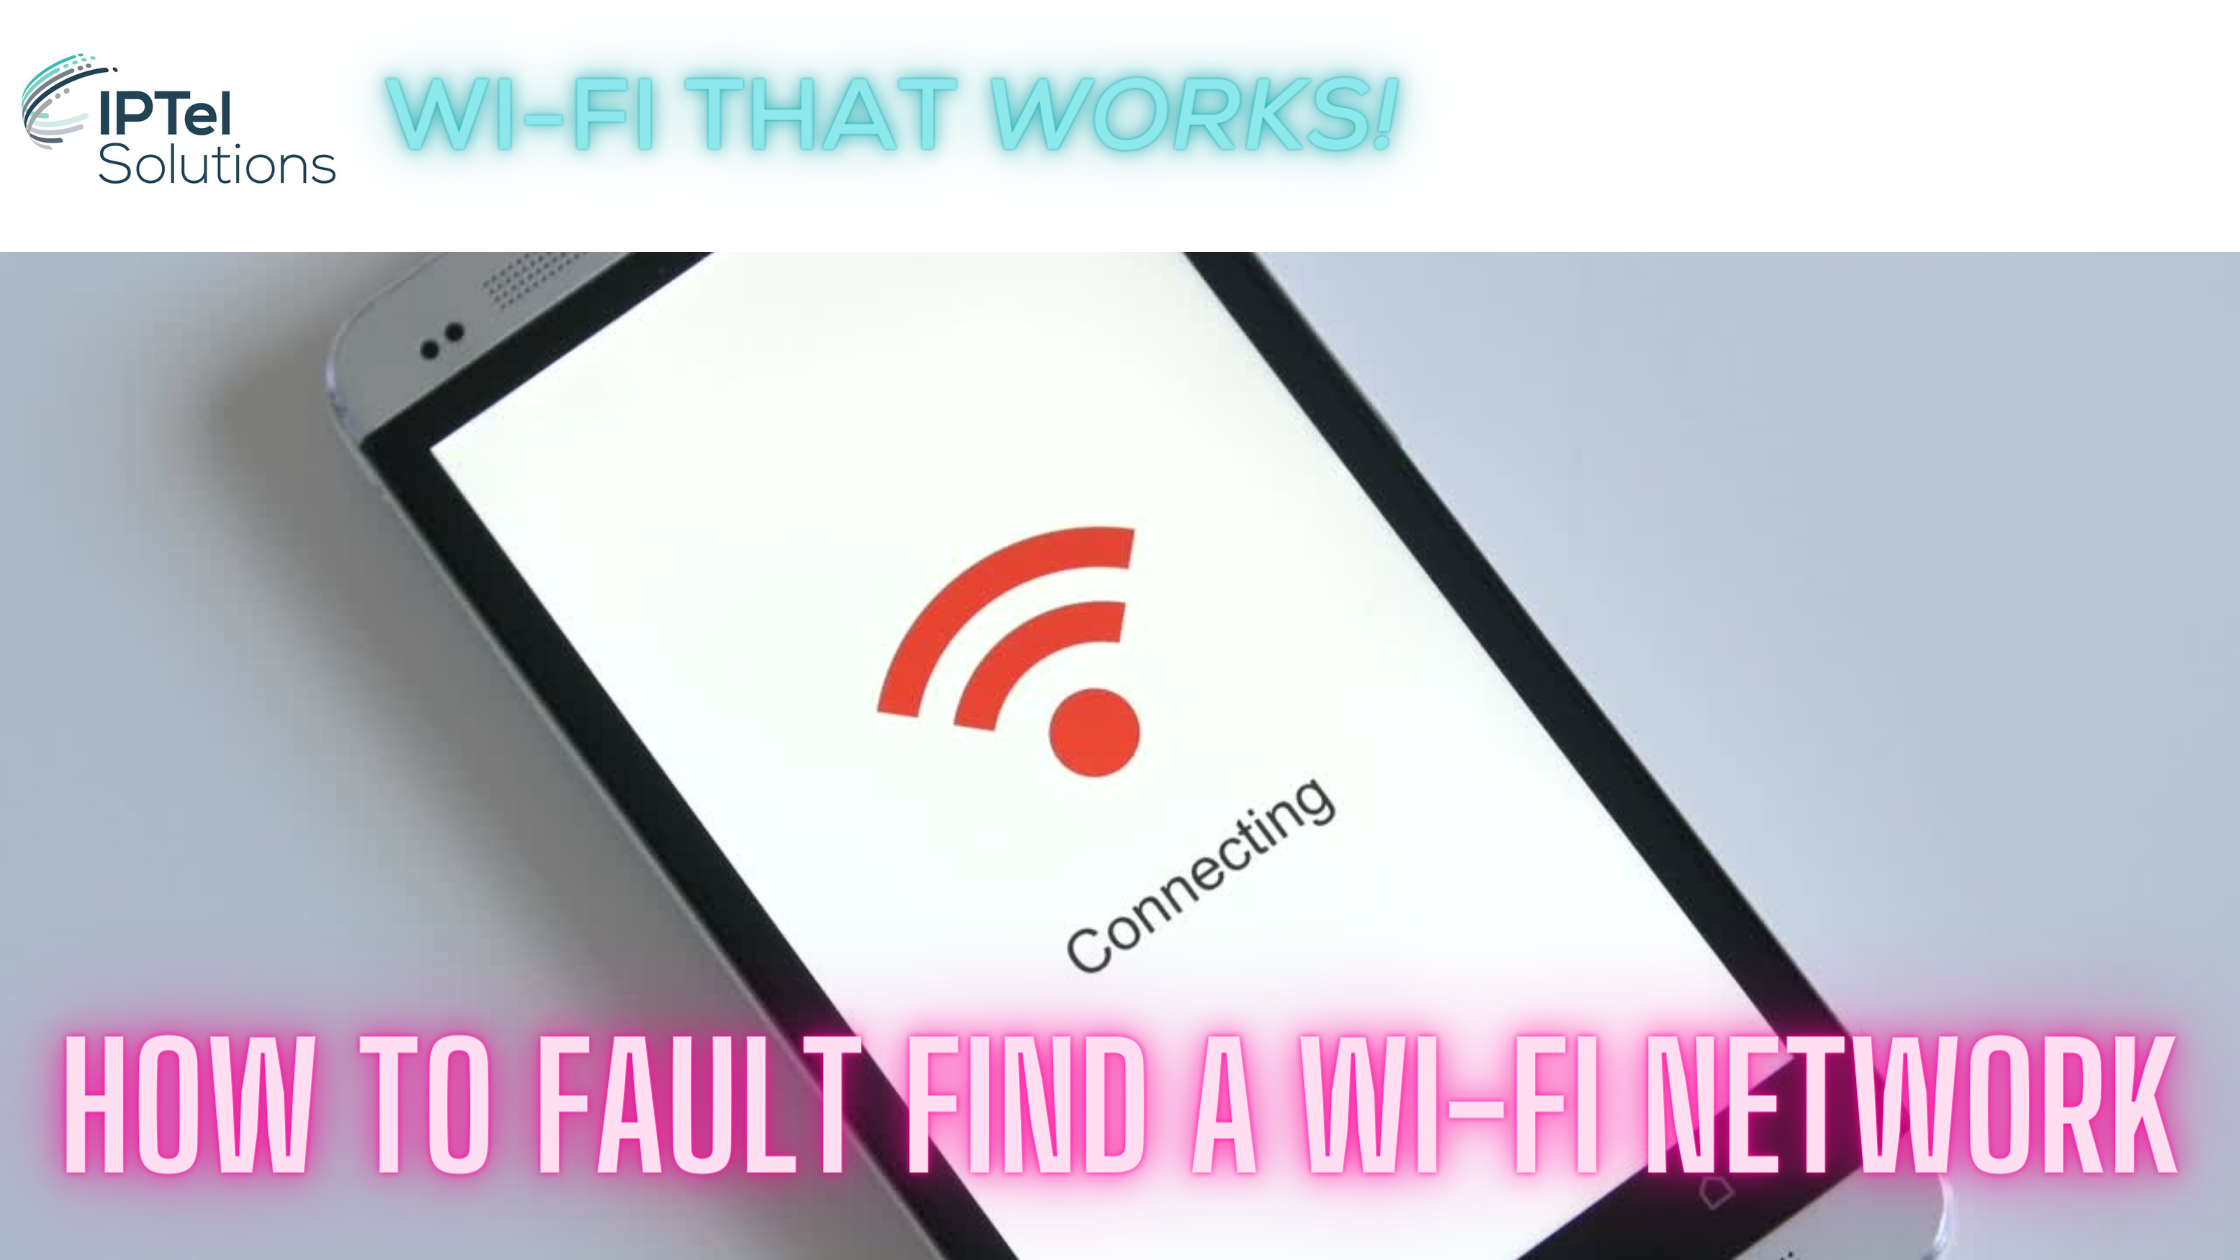 How to Fault Find a Wi-Fi Network